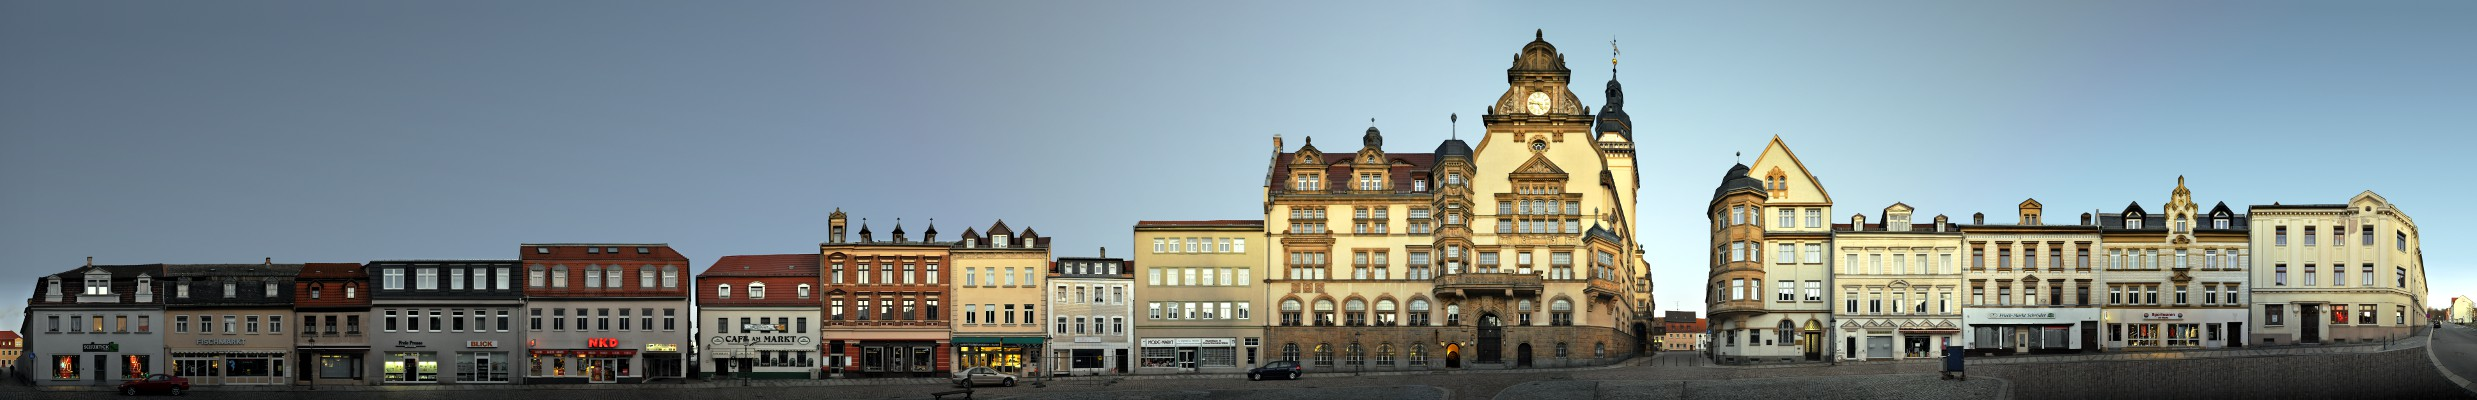 Marketplace / Town Hall • Werdau • Germany